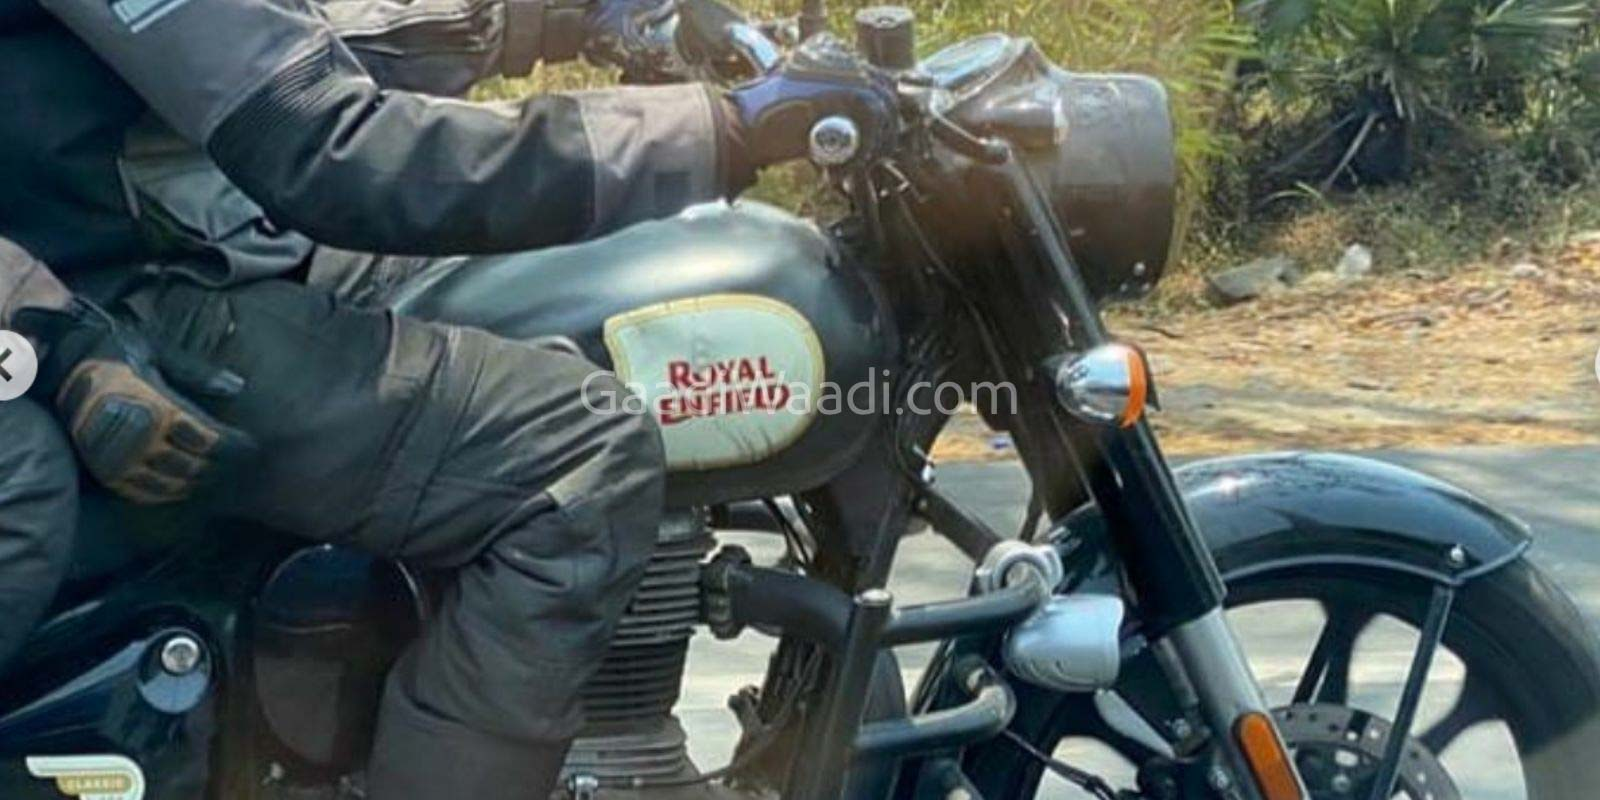 2021 Royal Enfield Classic 350 Alloy Wheels 11